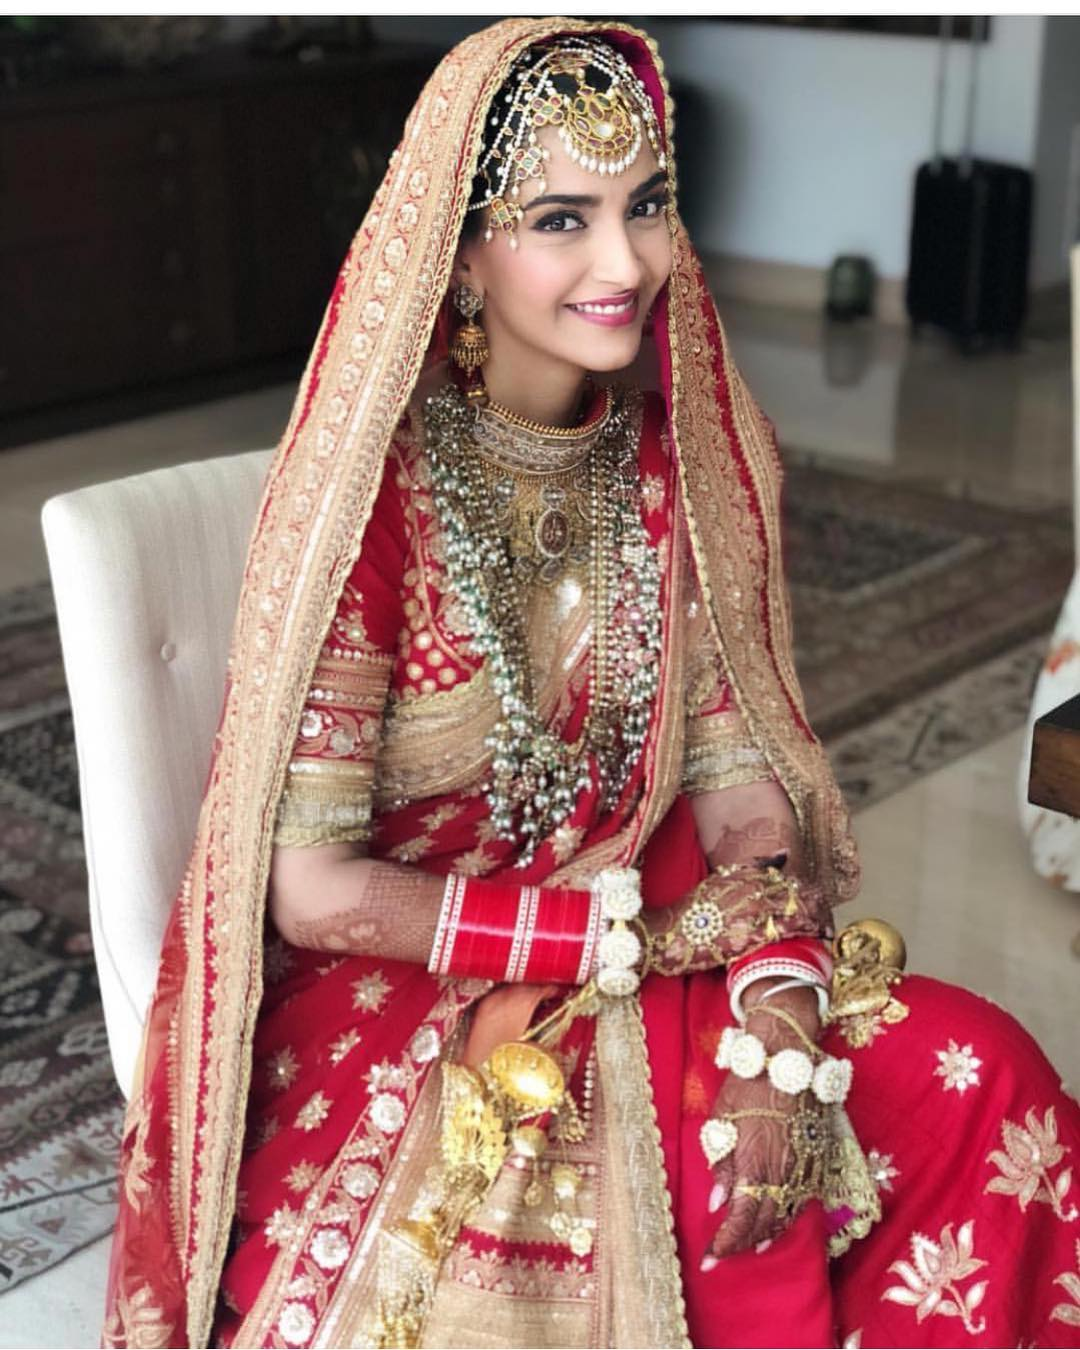 17-2 Sonam Kapoor Wedding Pics - Engagement and Complete Wedding Pictures